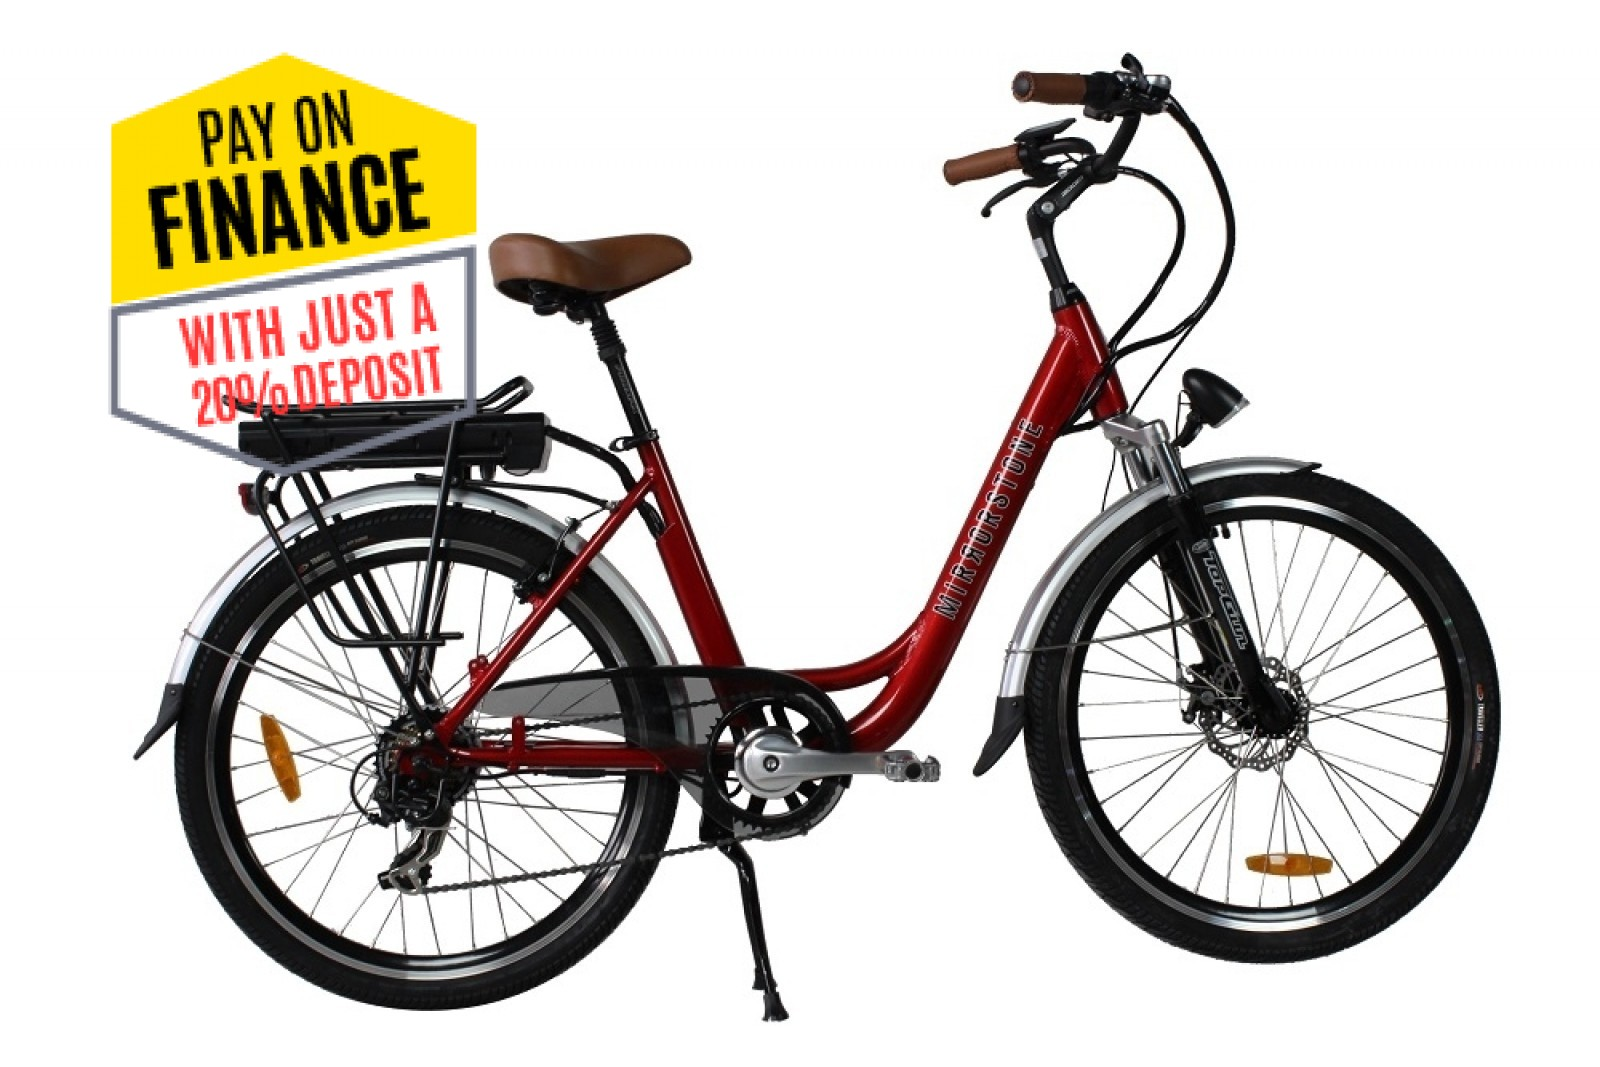 Sprint Electric Bike Cherry Red Wheels - Less Than 4 Bike's Left in Stock - Buy Now!